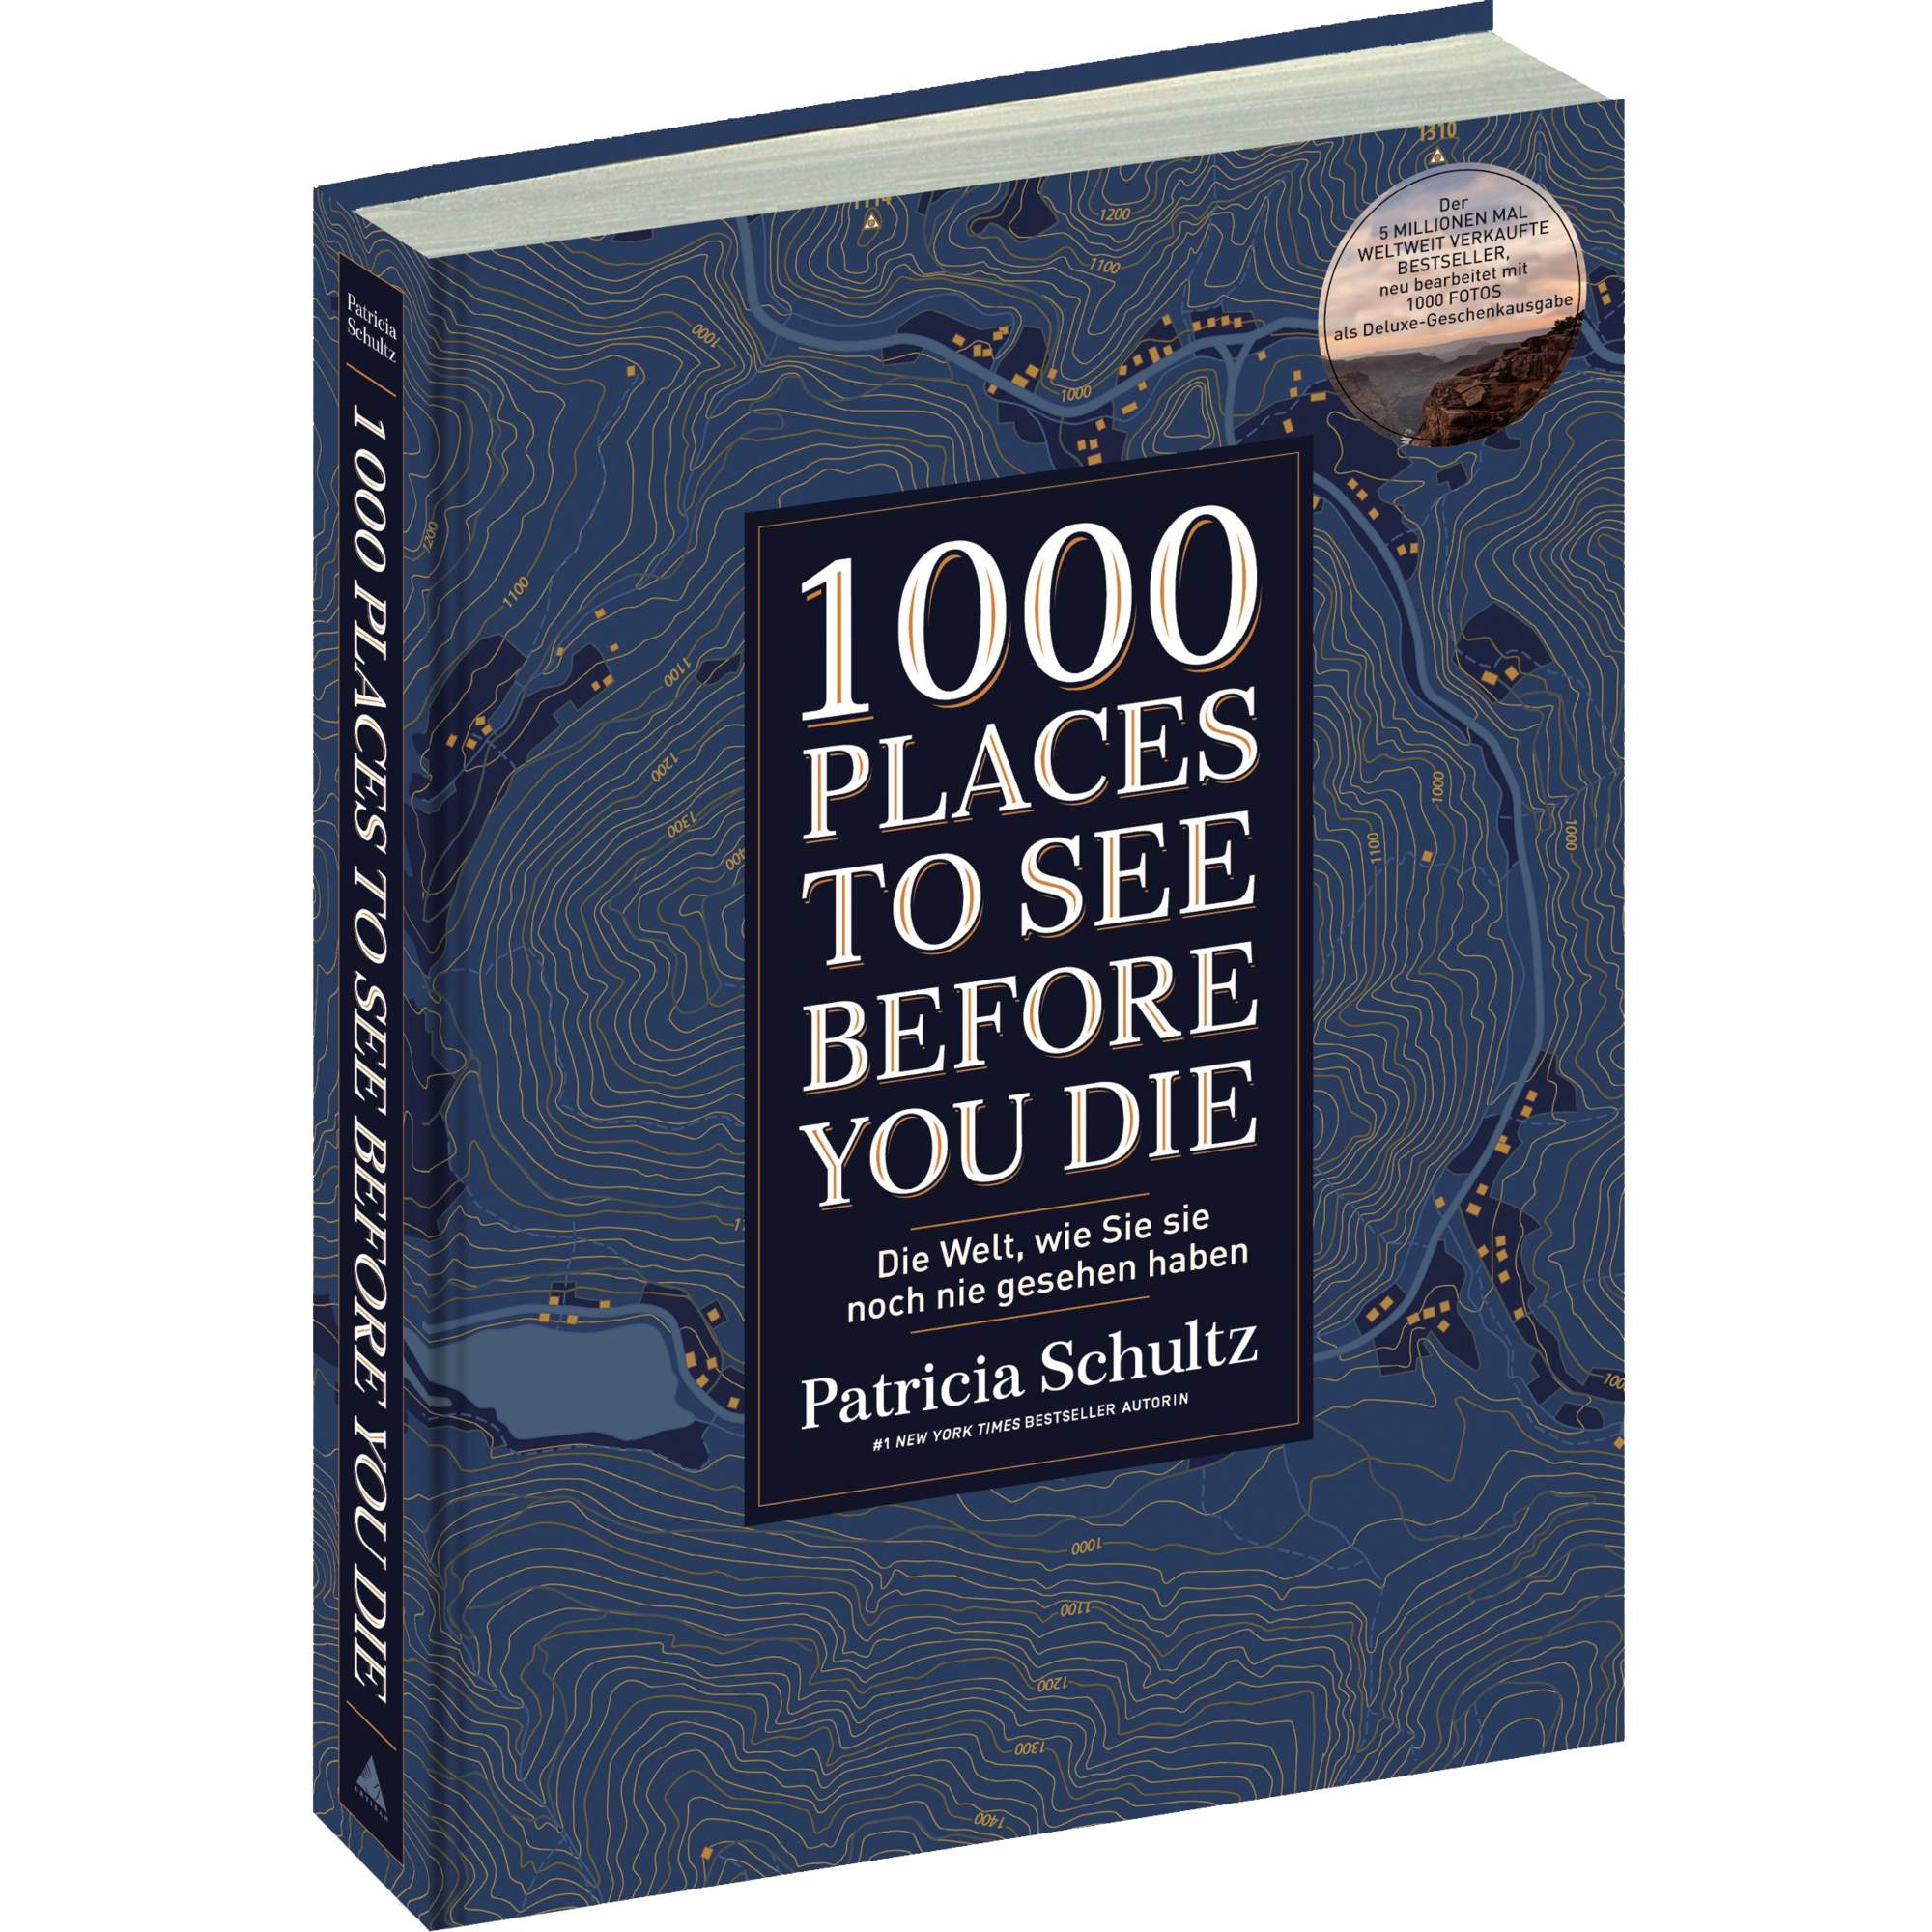 1000 Places To See Before You Die, 49,90 Euro